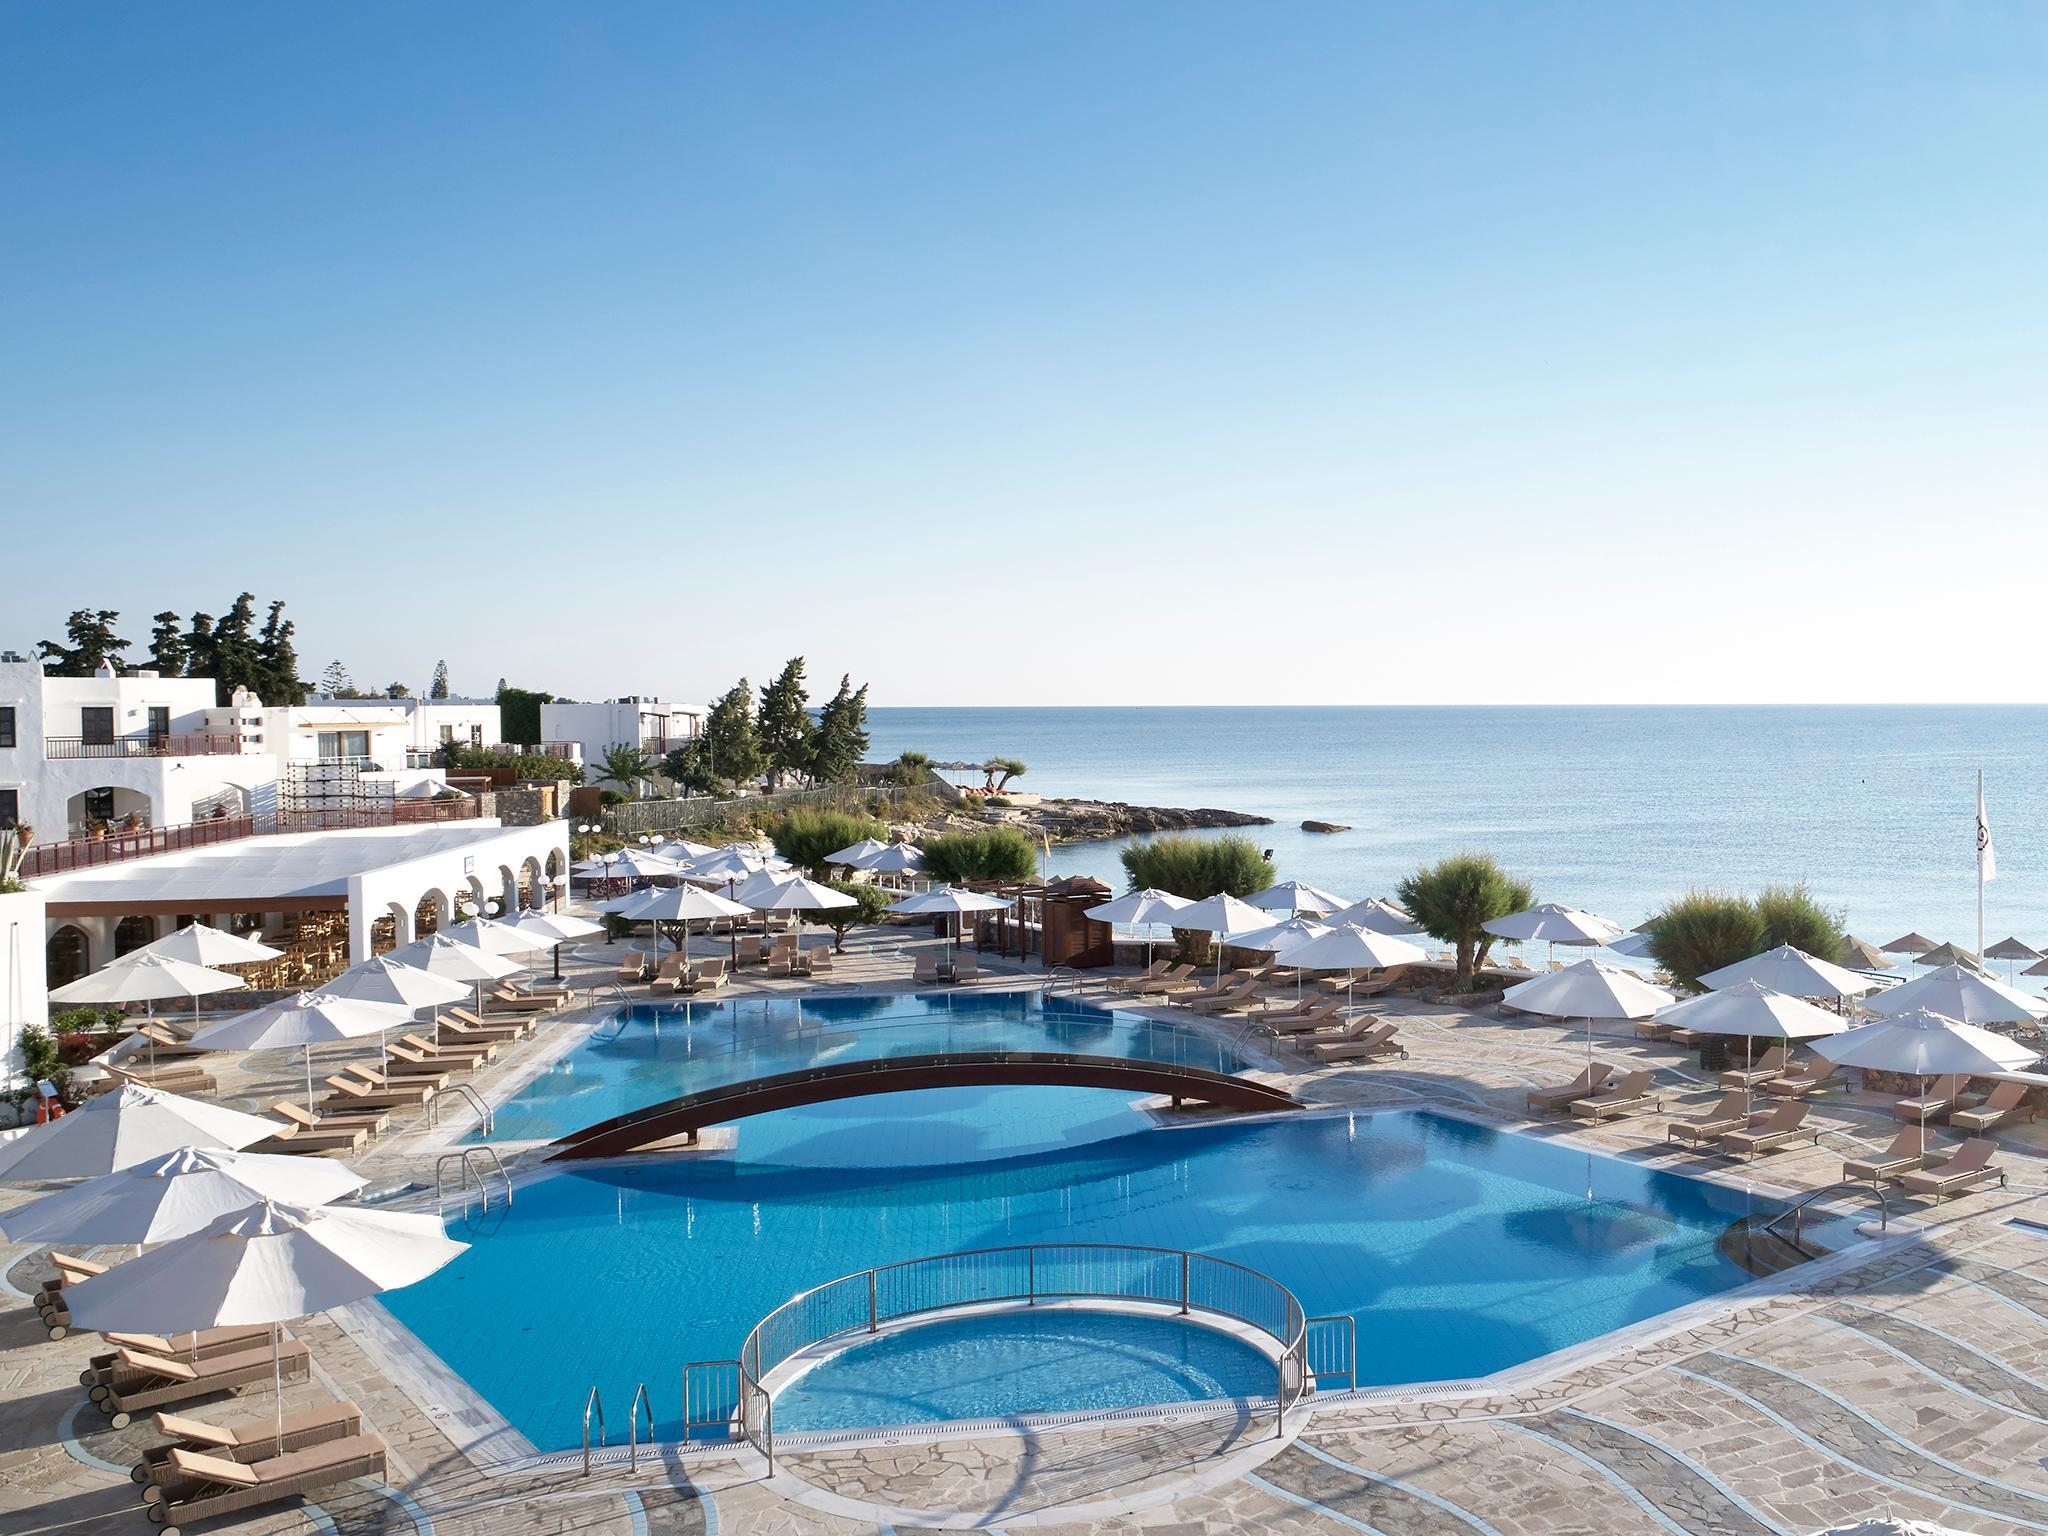 Creta Maris Beach Resort in Hersonissos, Crete, Greek Islands